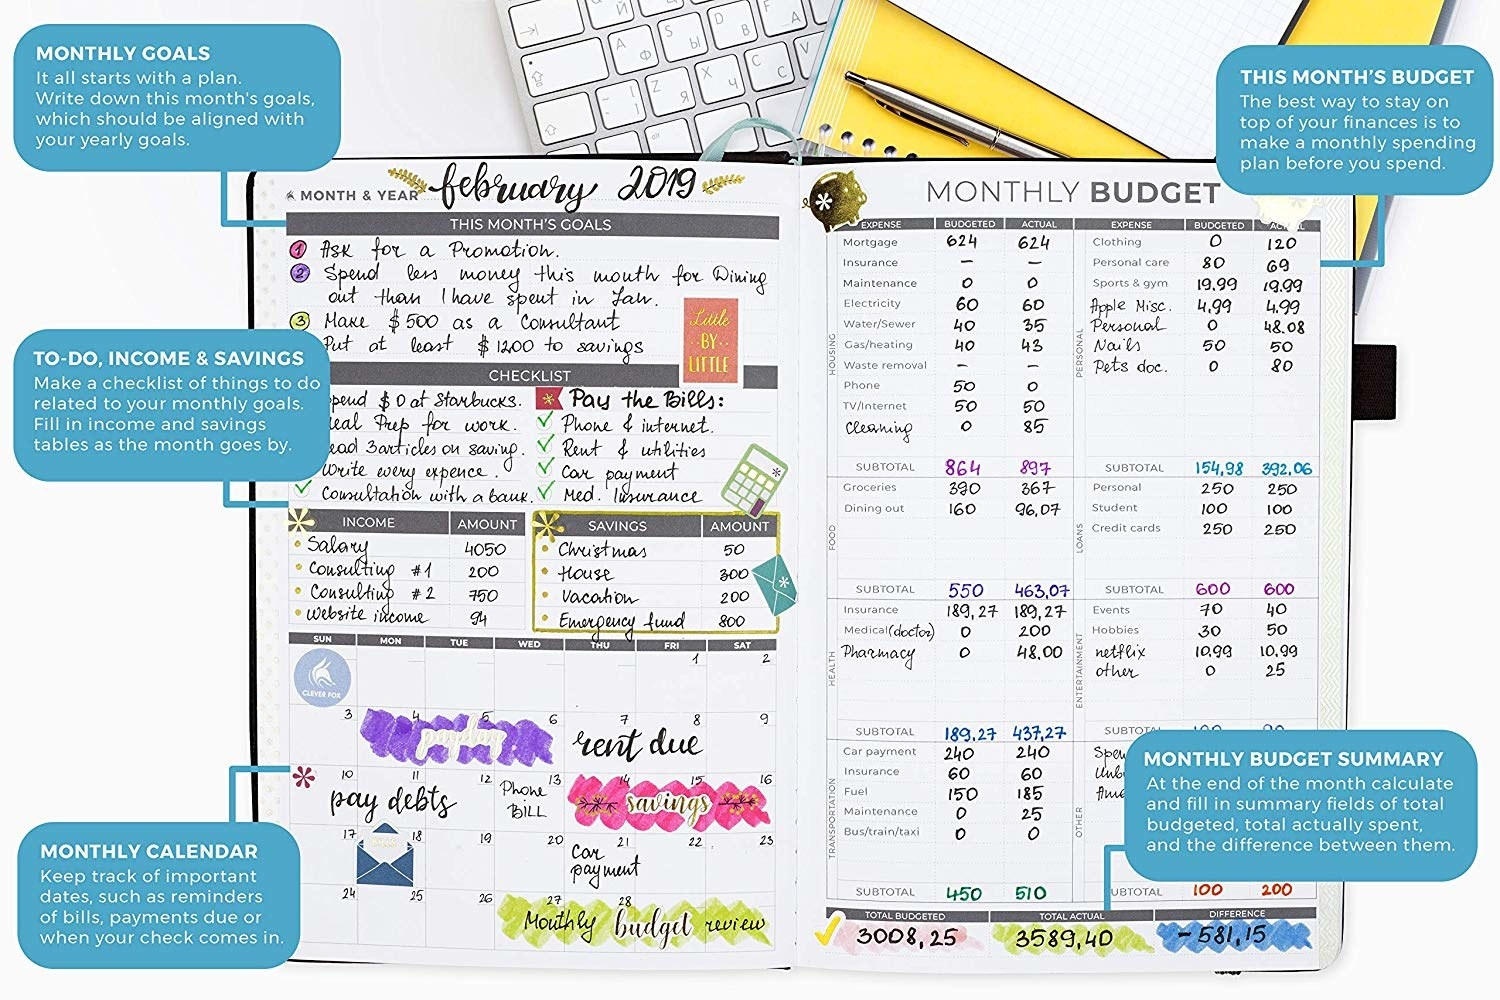 The inside of the planner, with monthly goals, spaces for income, to-do lists, savings, a monthly calendar, and monthly budget